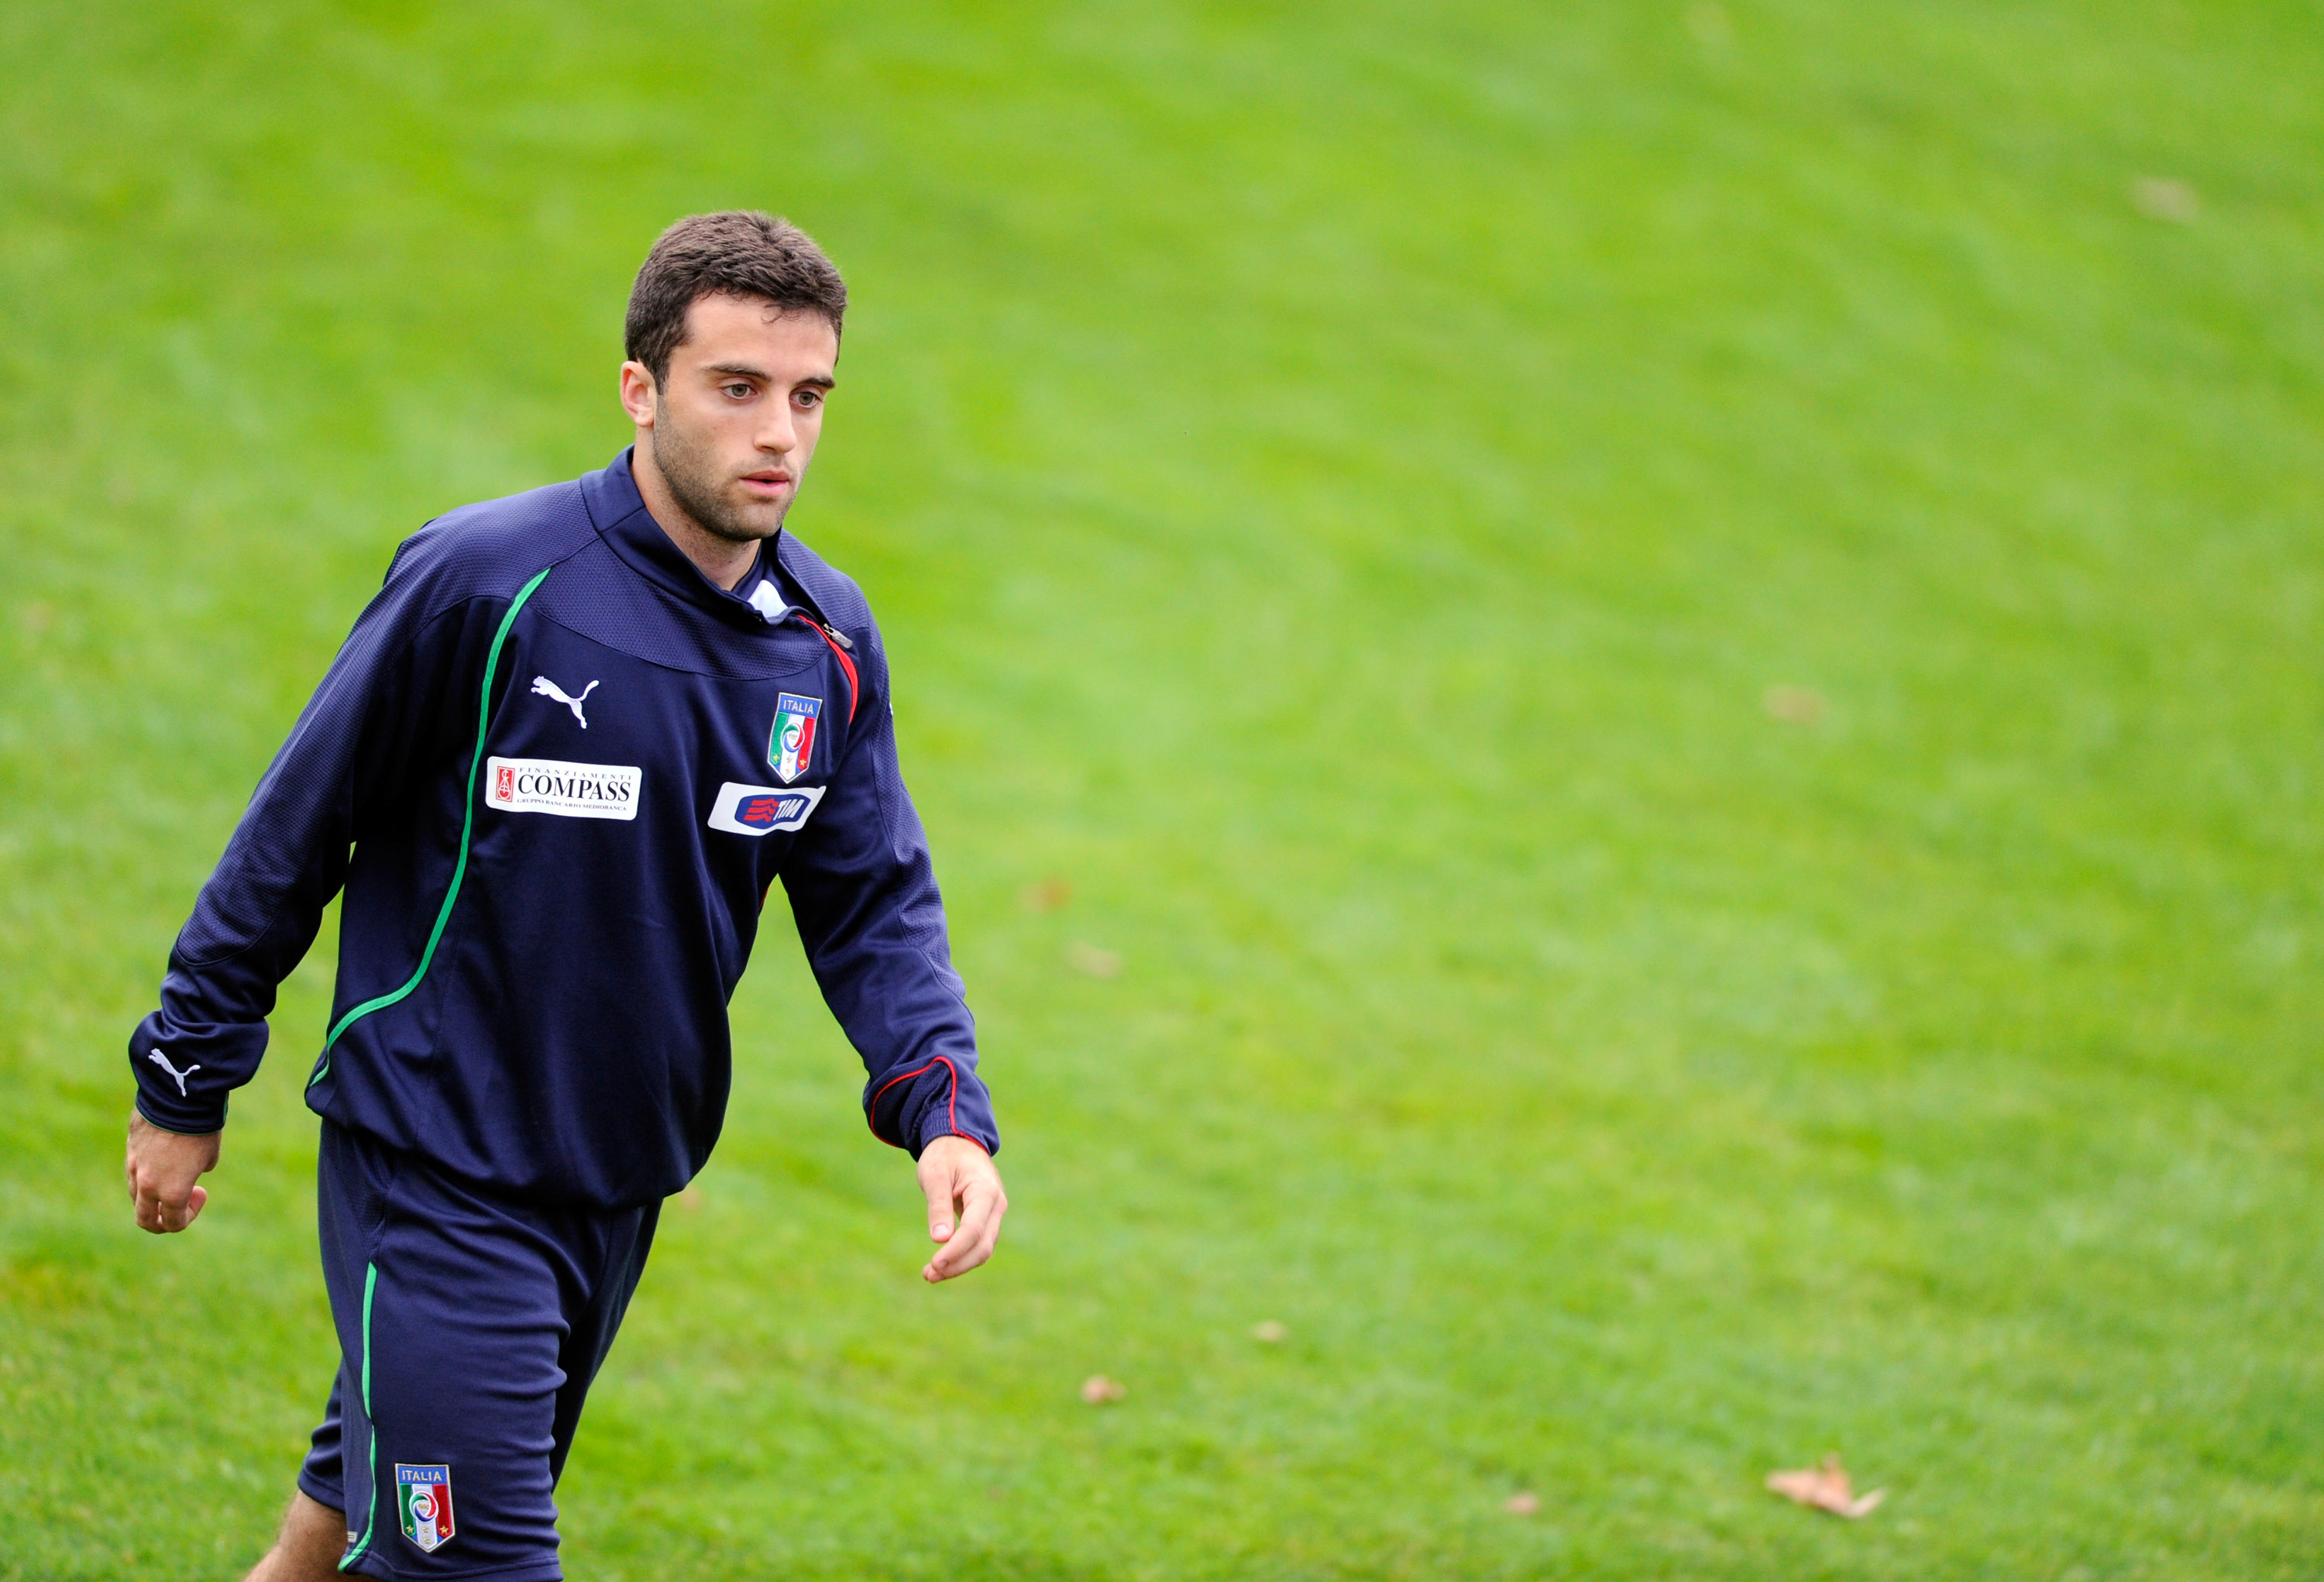 FLORENCE, ITALY - NOVEMBER 15:  Giuseppe Rossi during an Italy Training Session at Coverciano on November 15, 2010 in Florence, Italy.  (Photo by Claudio Villa/Getty Images)